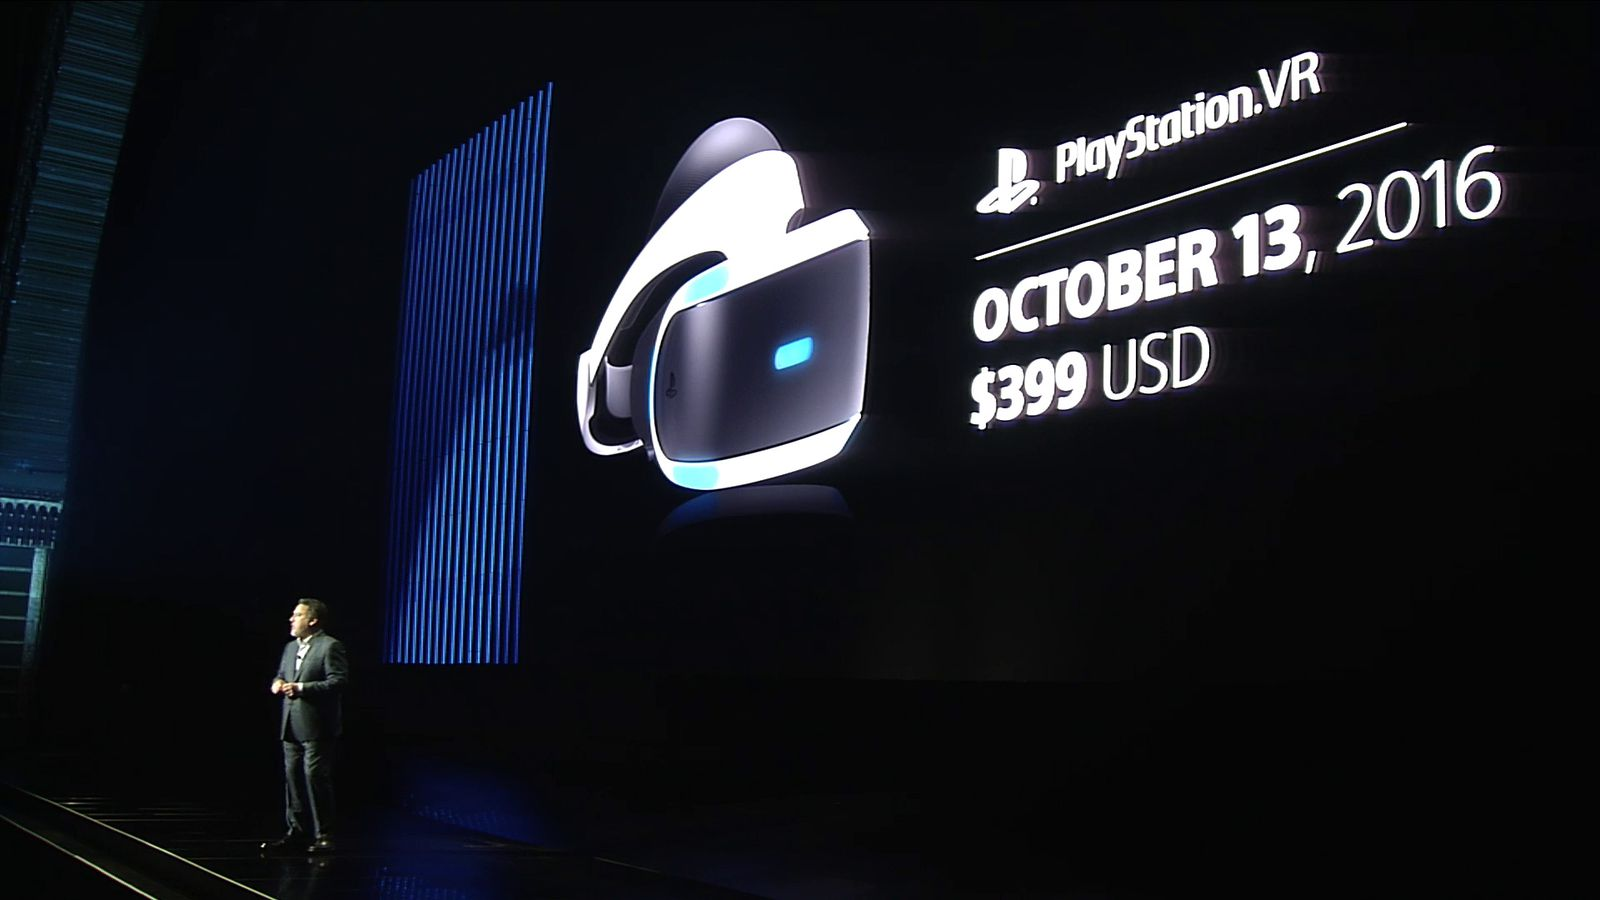 PlayStation VR launches Oct. 13 (update) - Polygon